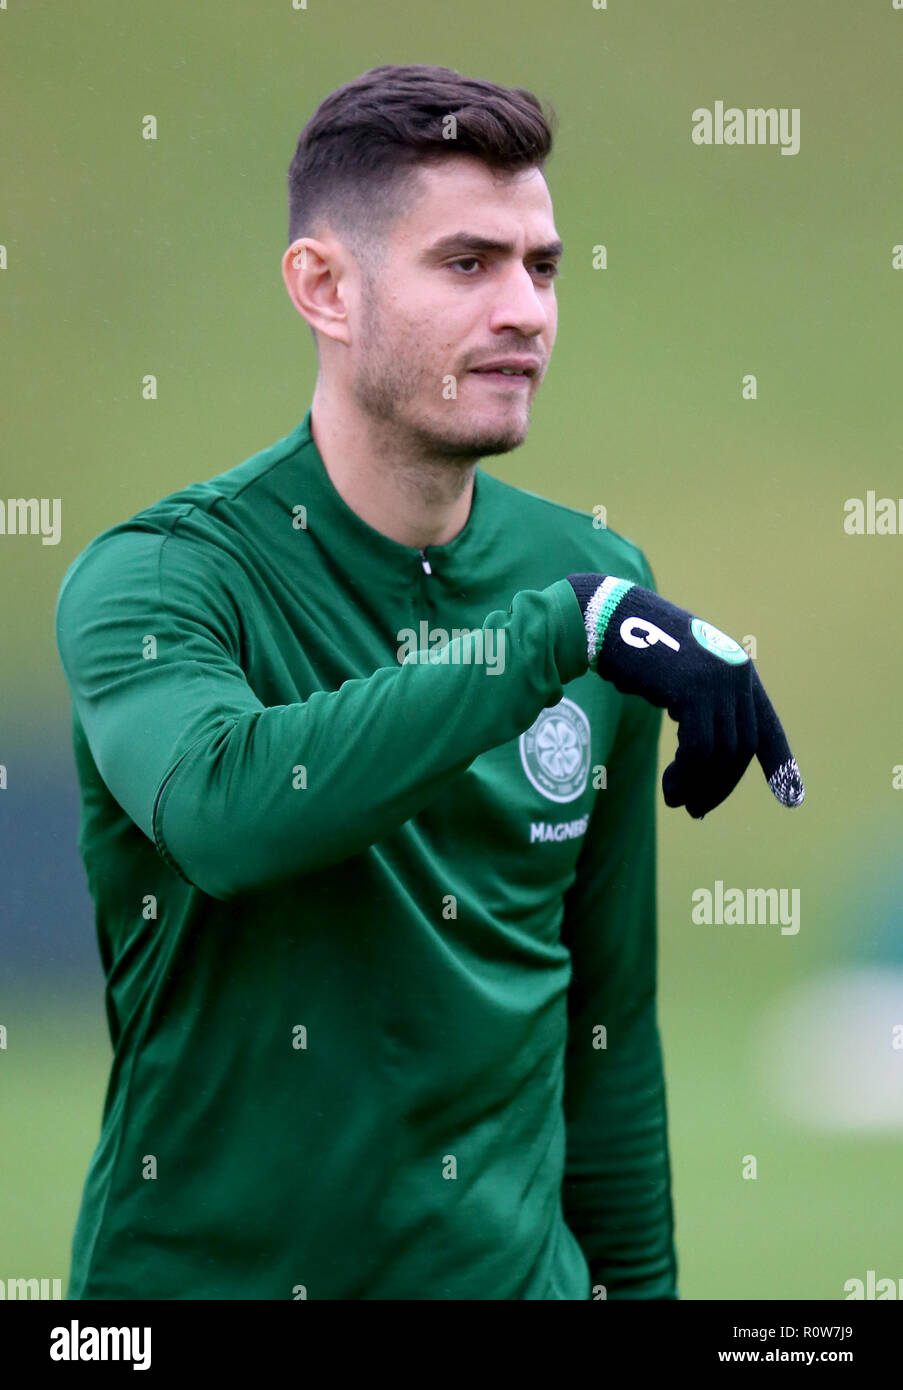 Celtic's Nir Bitton during the training session at Lennoxtown, Glasgow. - Stock Image